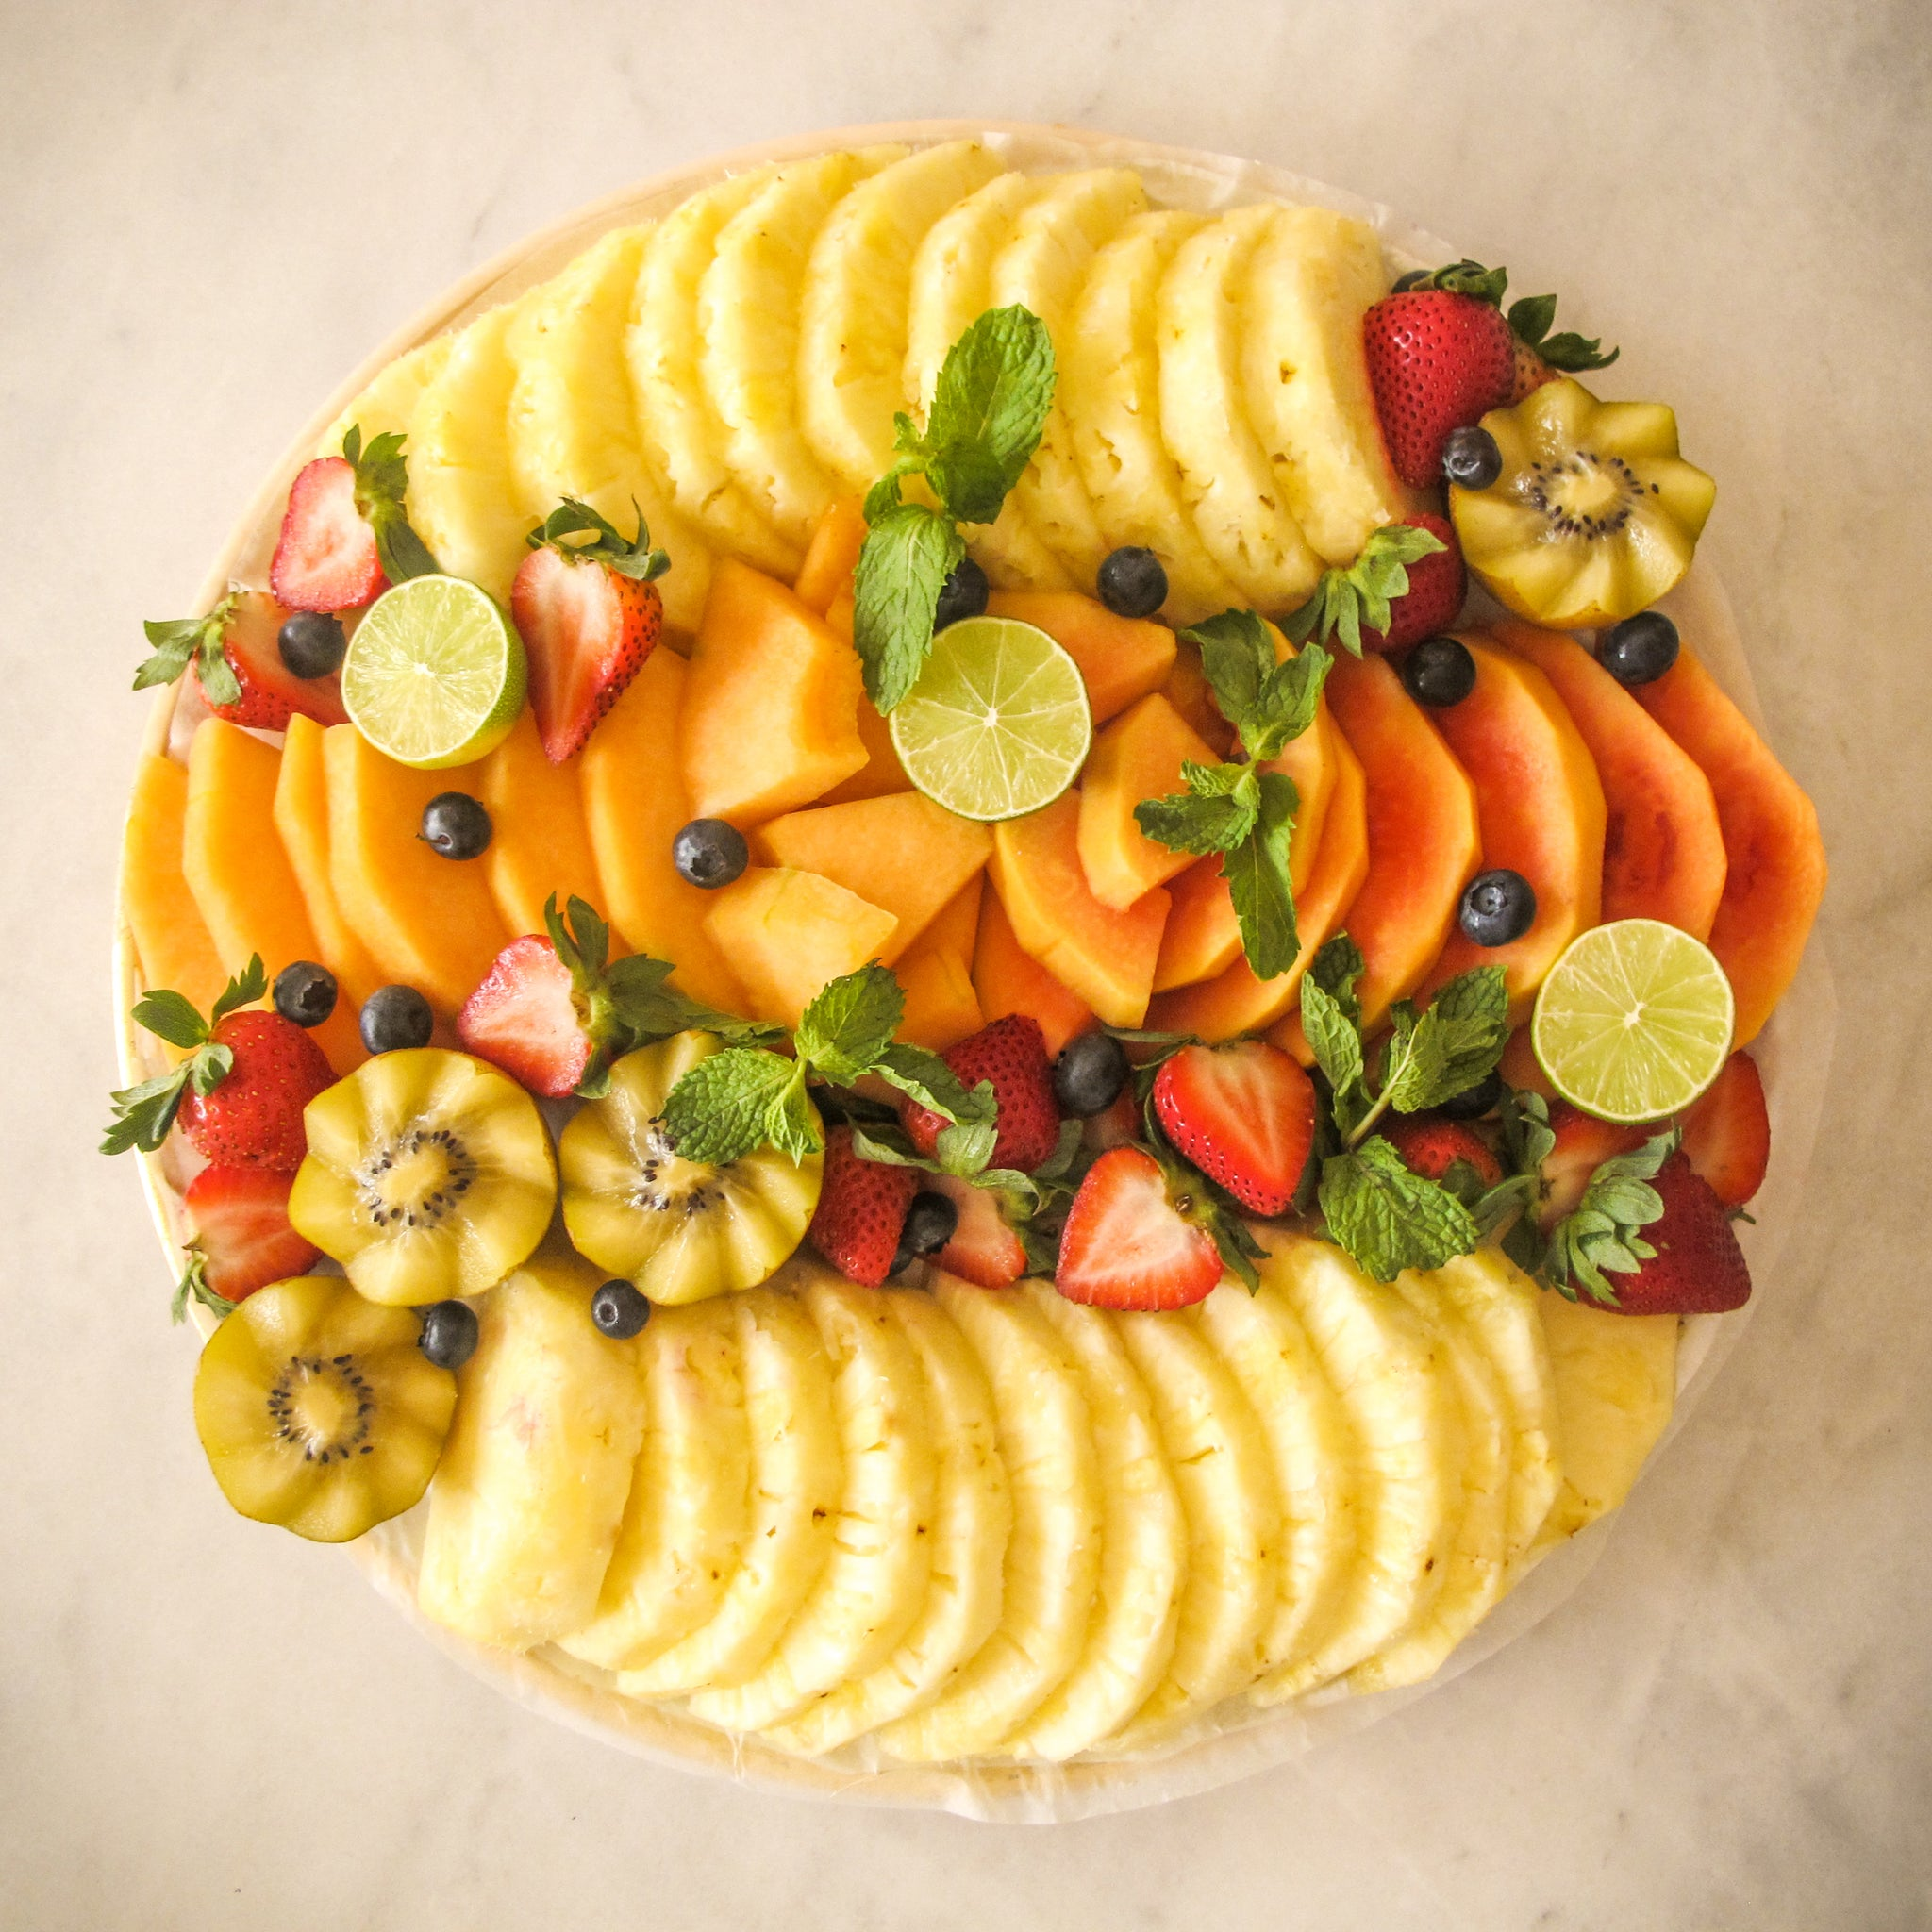 Pineapple Fruit Platter - Titankuwait